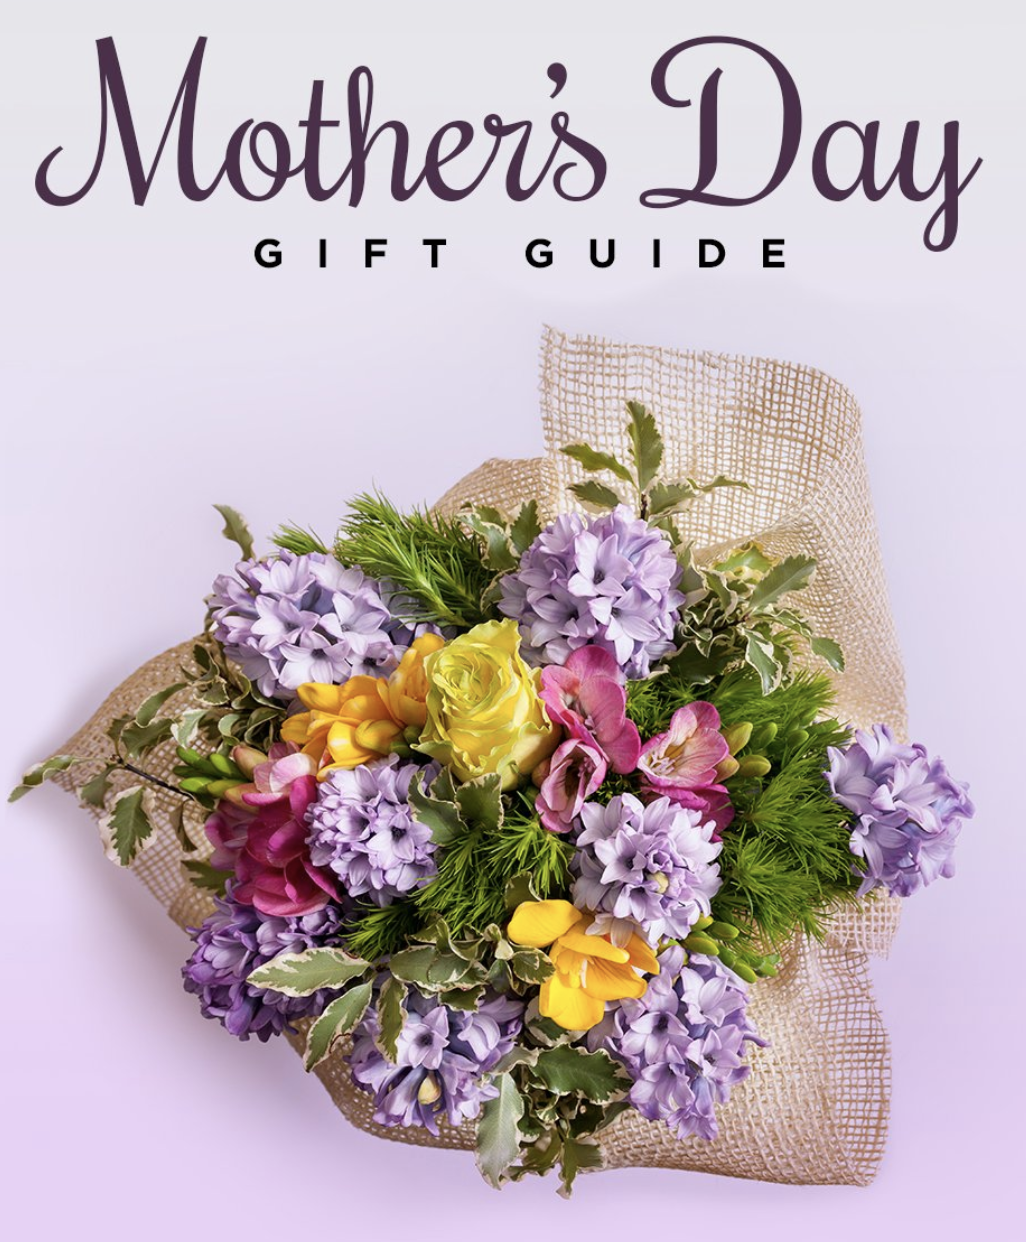 mothers day gift guide, mothers day gifts, mothers day gift ideas, gifts for mom,